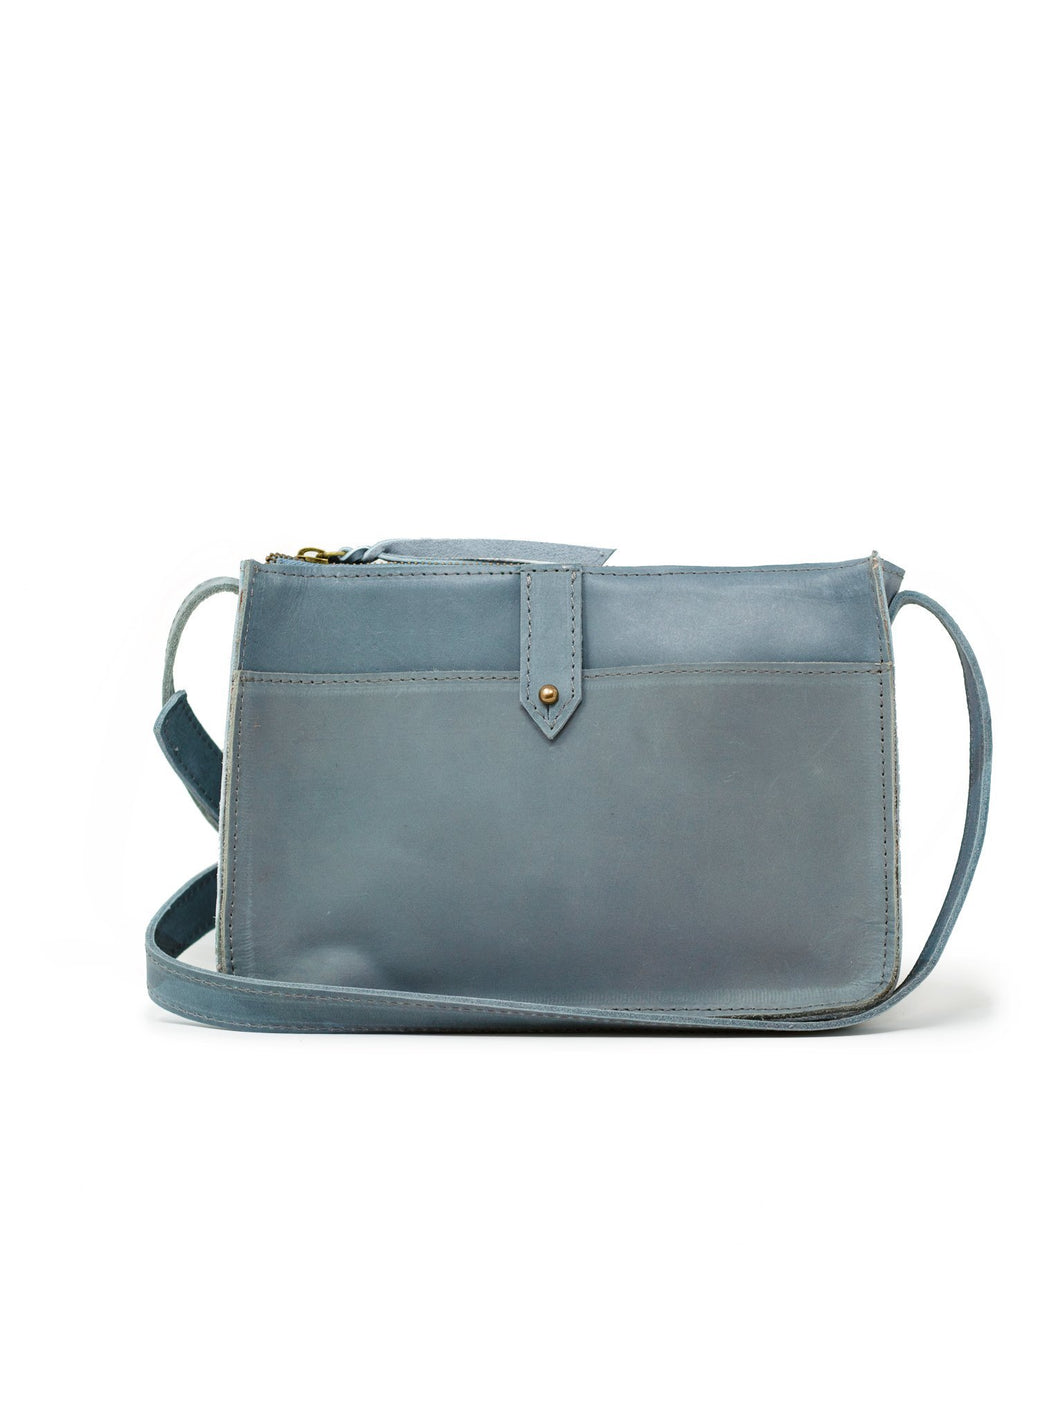 The Chaltu Top Zip Crossbody by Able